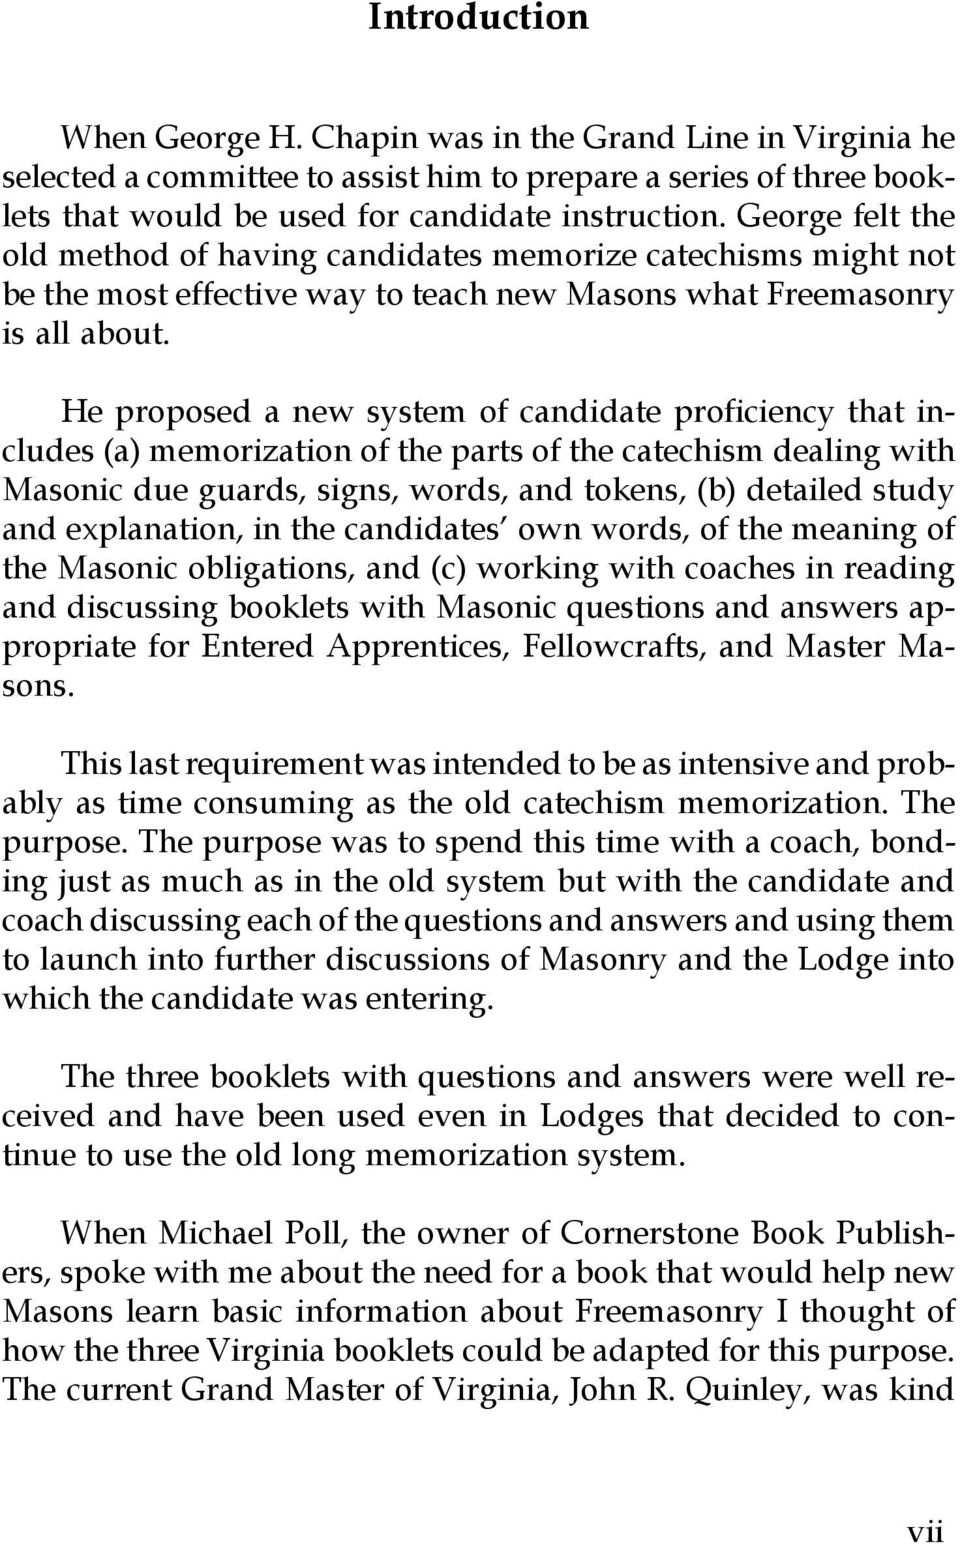 He proposed a new system of candidate proficiency that includes (a) memorization of the parts of the catechism dealing with Masonic due guards, signs, words, and tokens, (b) detailed study and